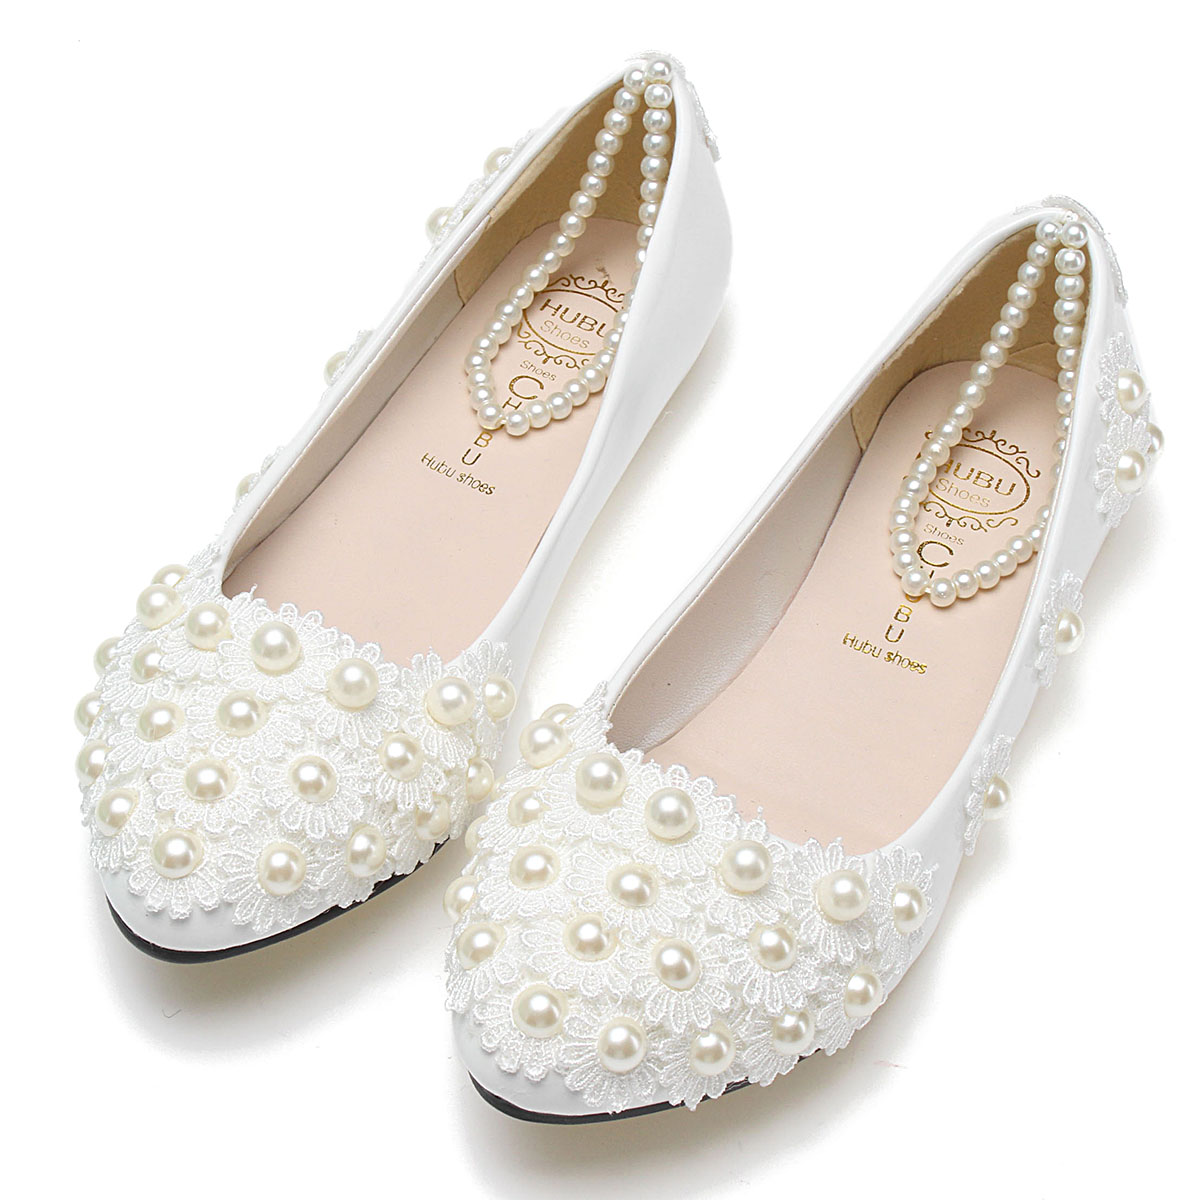 Handmade Wedding Shoes Women Lace Princess Ankle Strap Flats Mujer Zapatos White Flat Flower Pearl Bridesmaid Bridal Shoes<br><br>Aliexpress